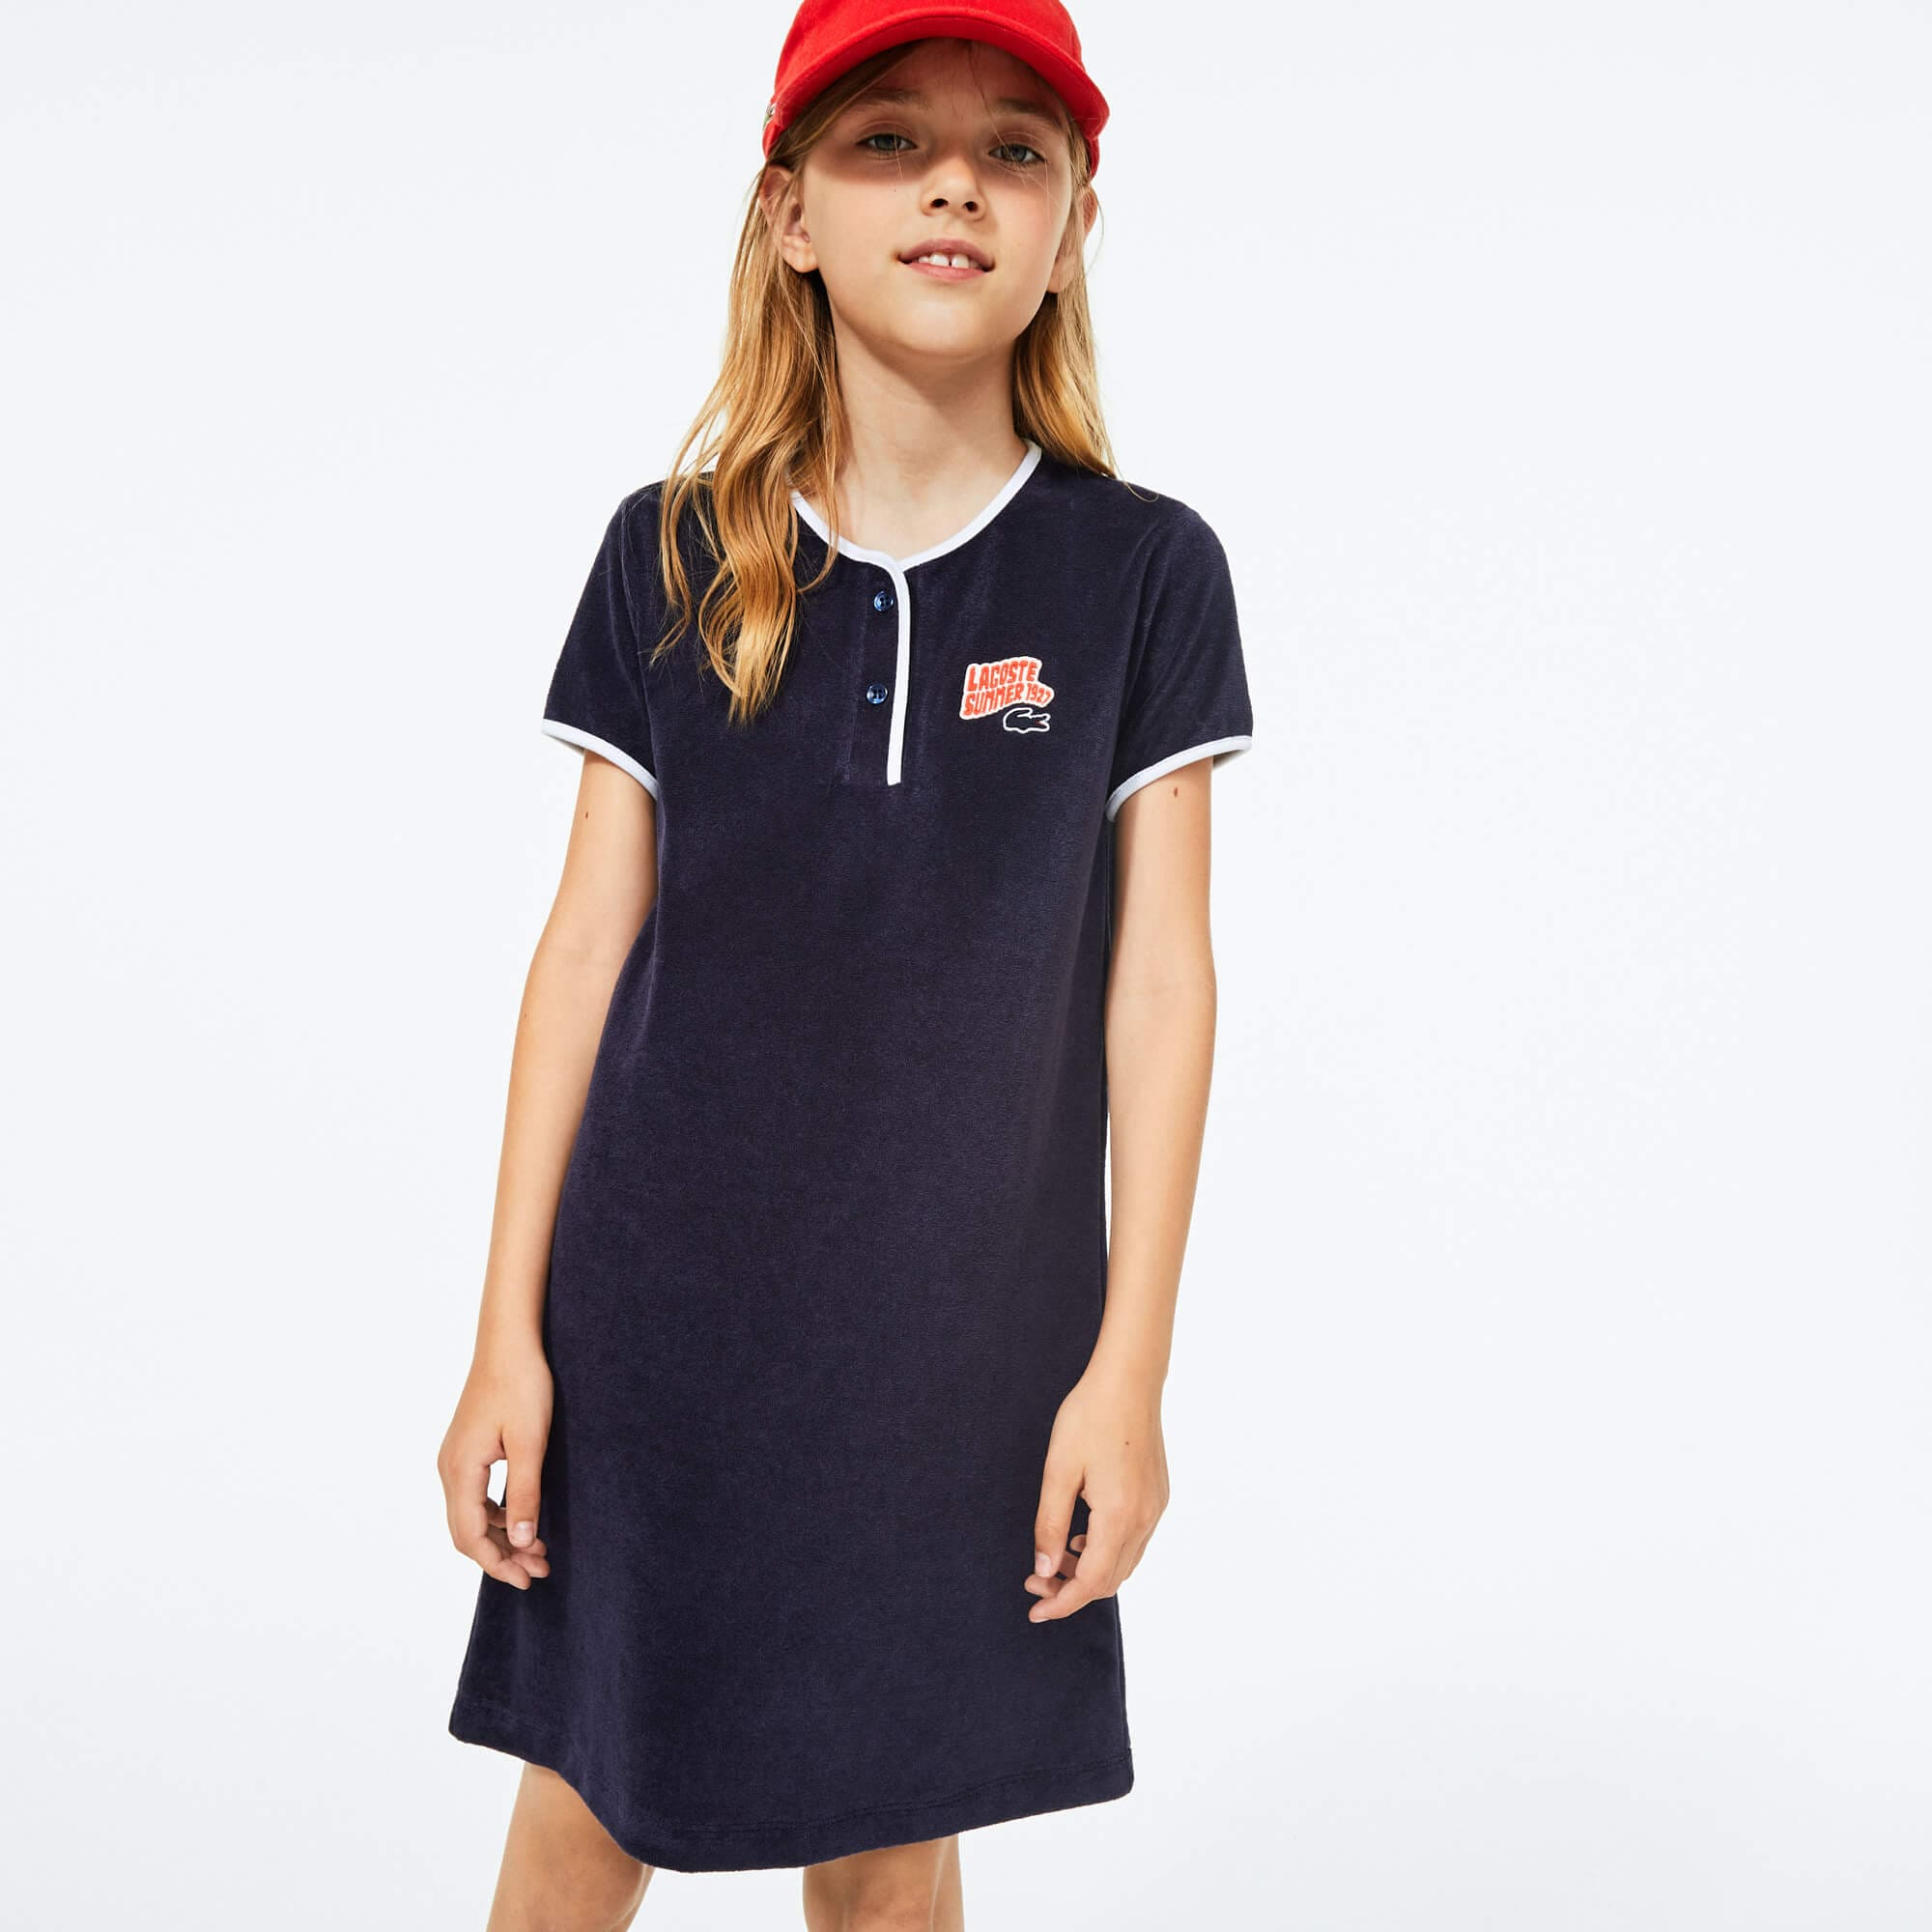 Girls' Badge Sponge Fabric Dress